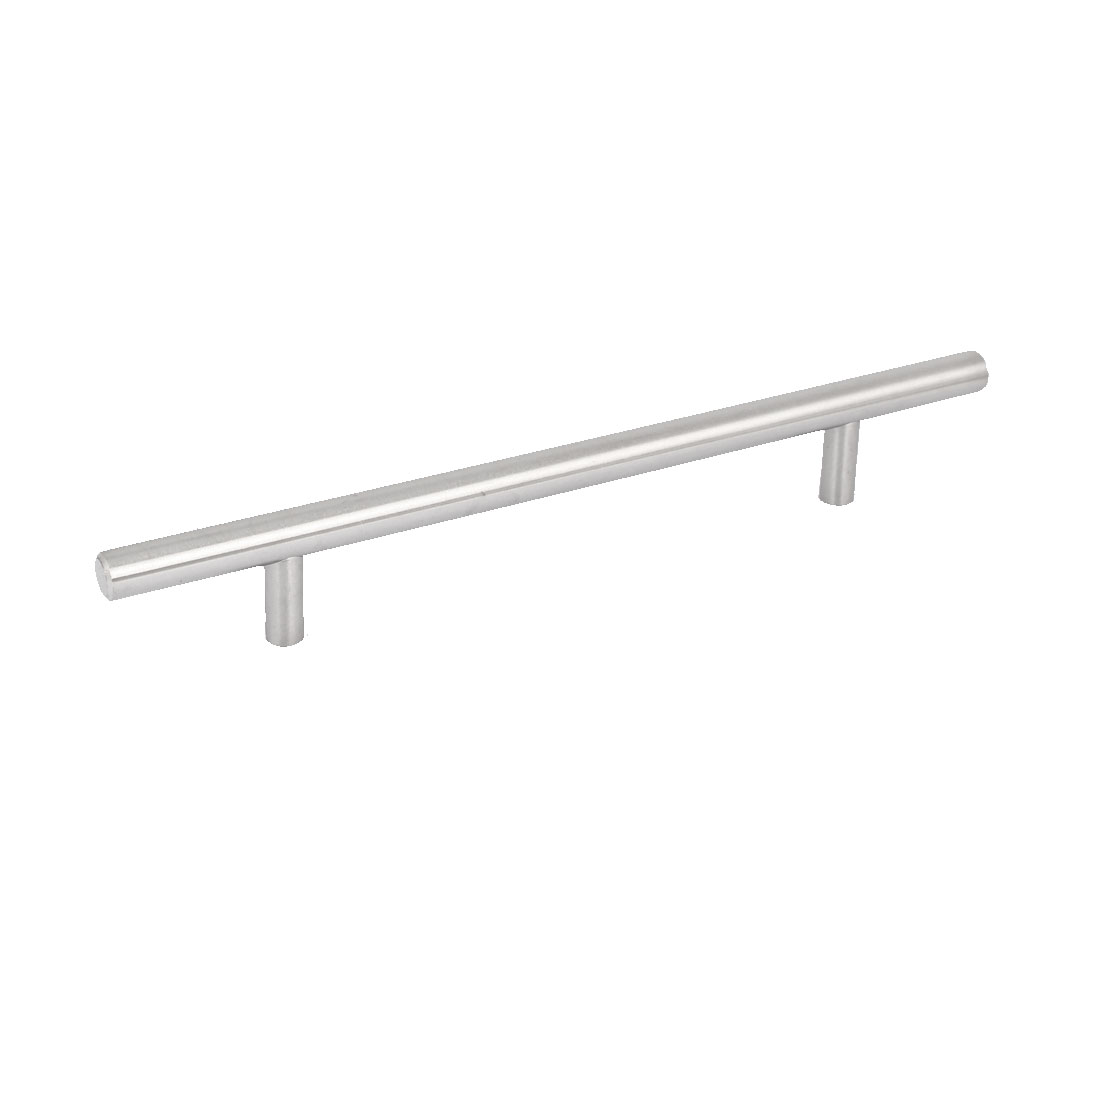 Furniture Cabinet Cupboard Stainless Steel Pull Bar Handle Grip 250mm Length